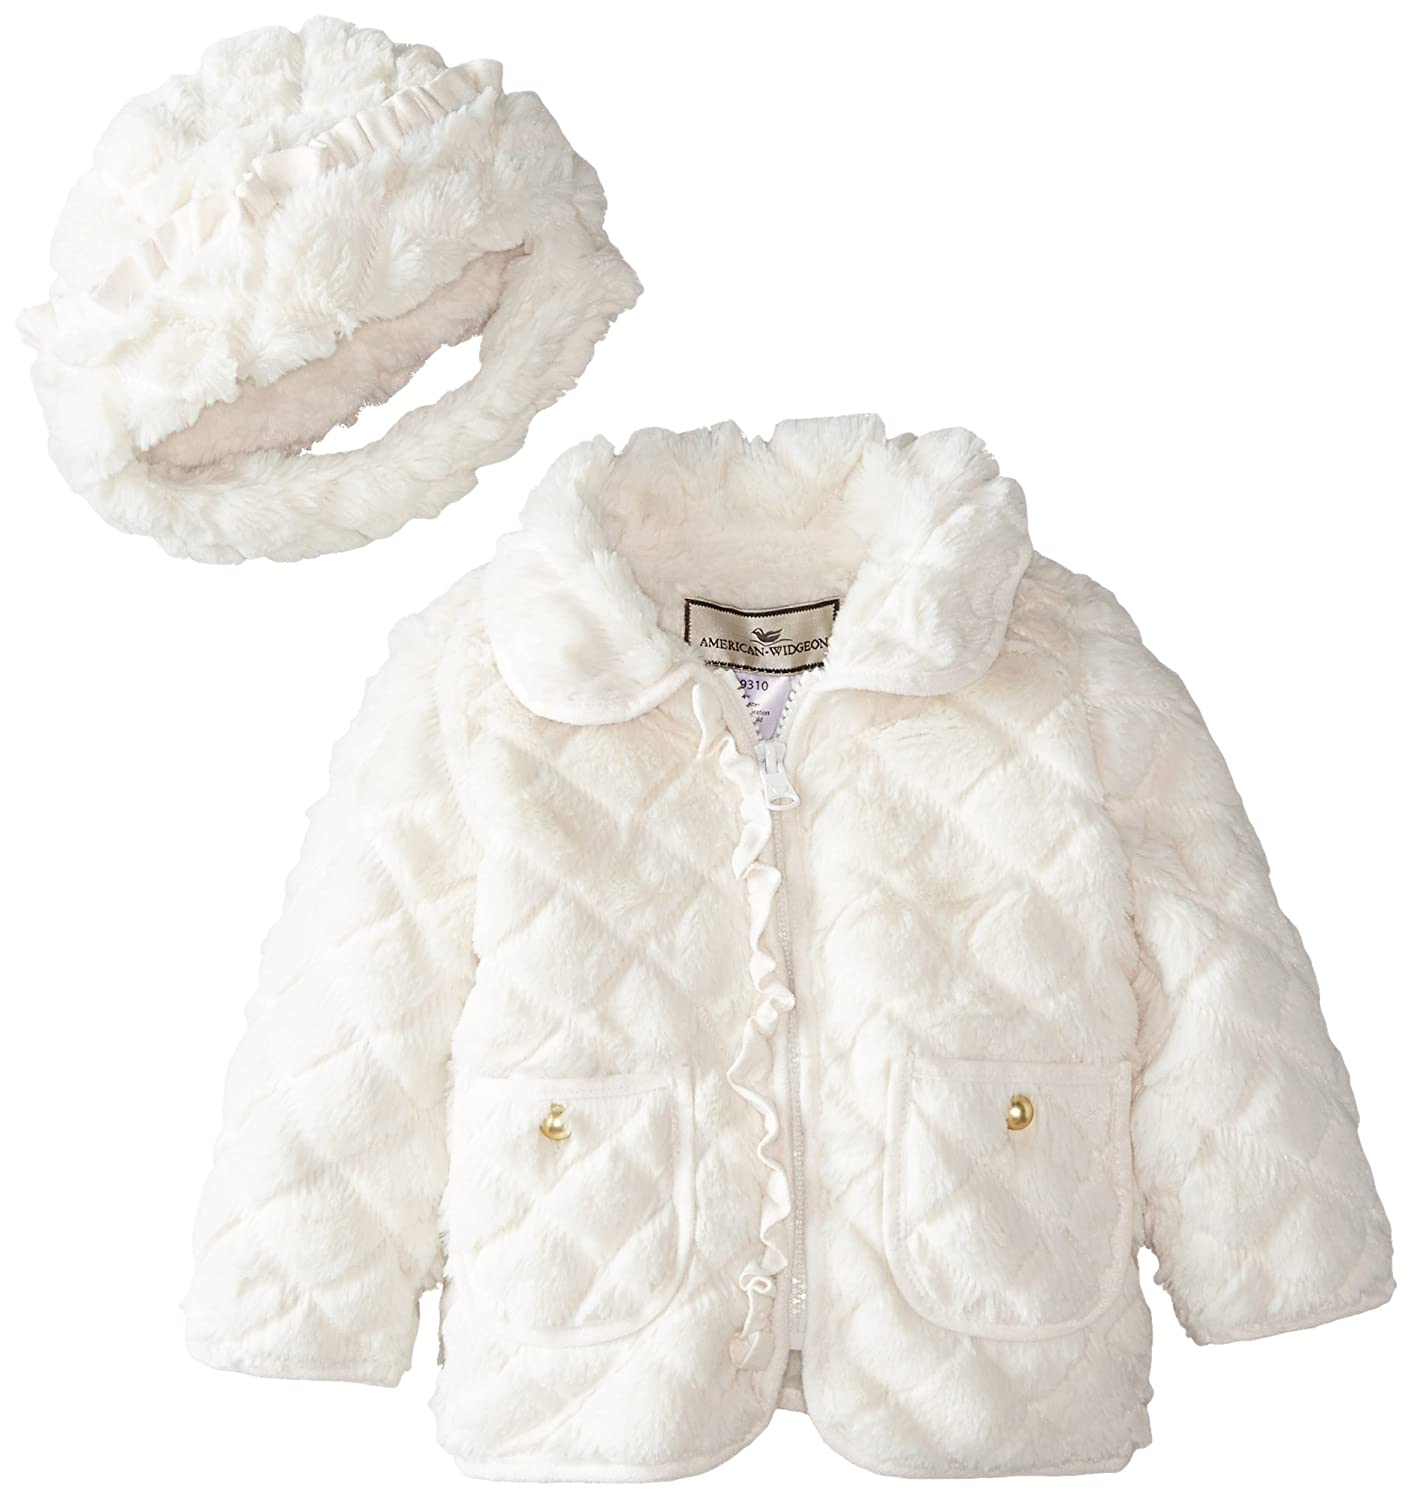 91f82354d Amazon.com  Widgeon Baby Girls  Quilted Jacket with Suede Ruffles ...